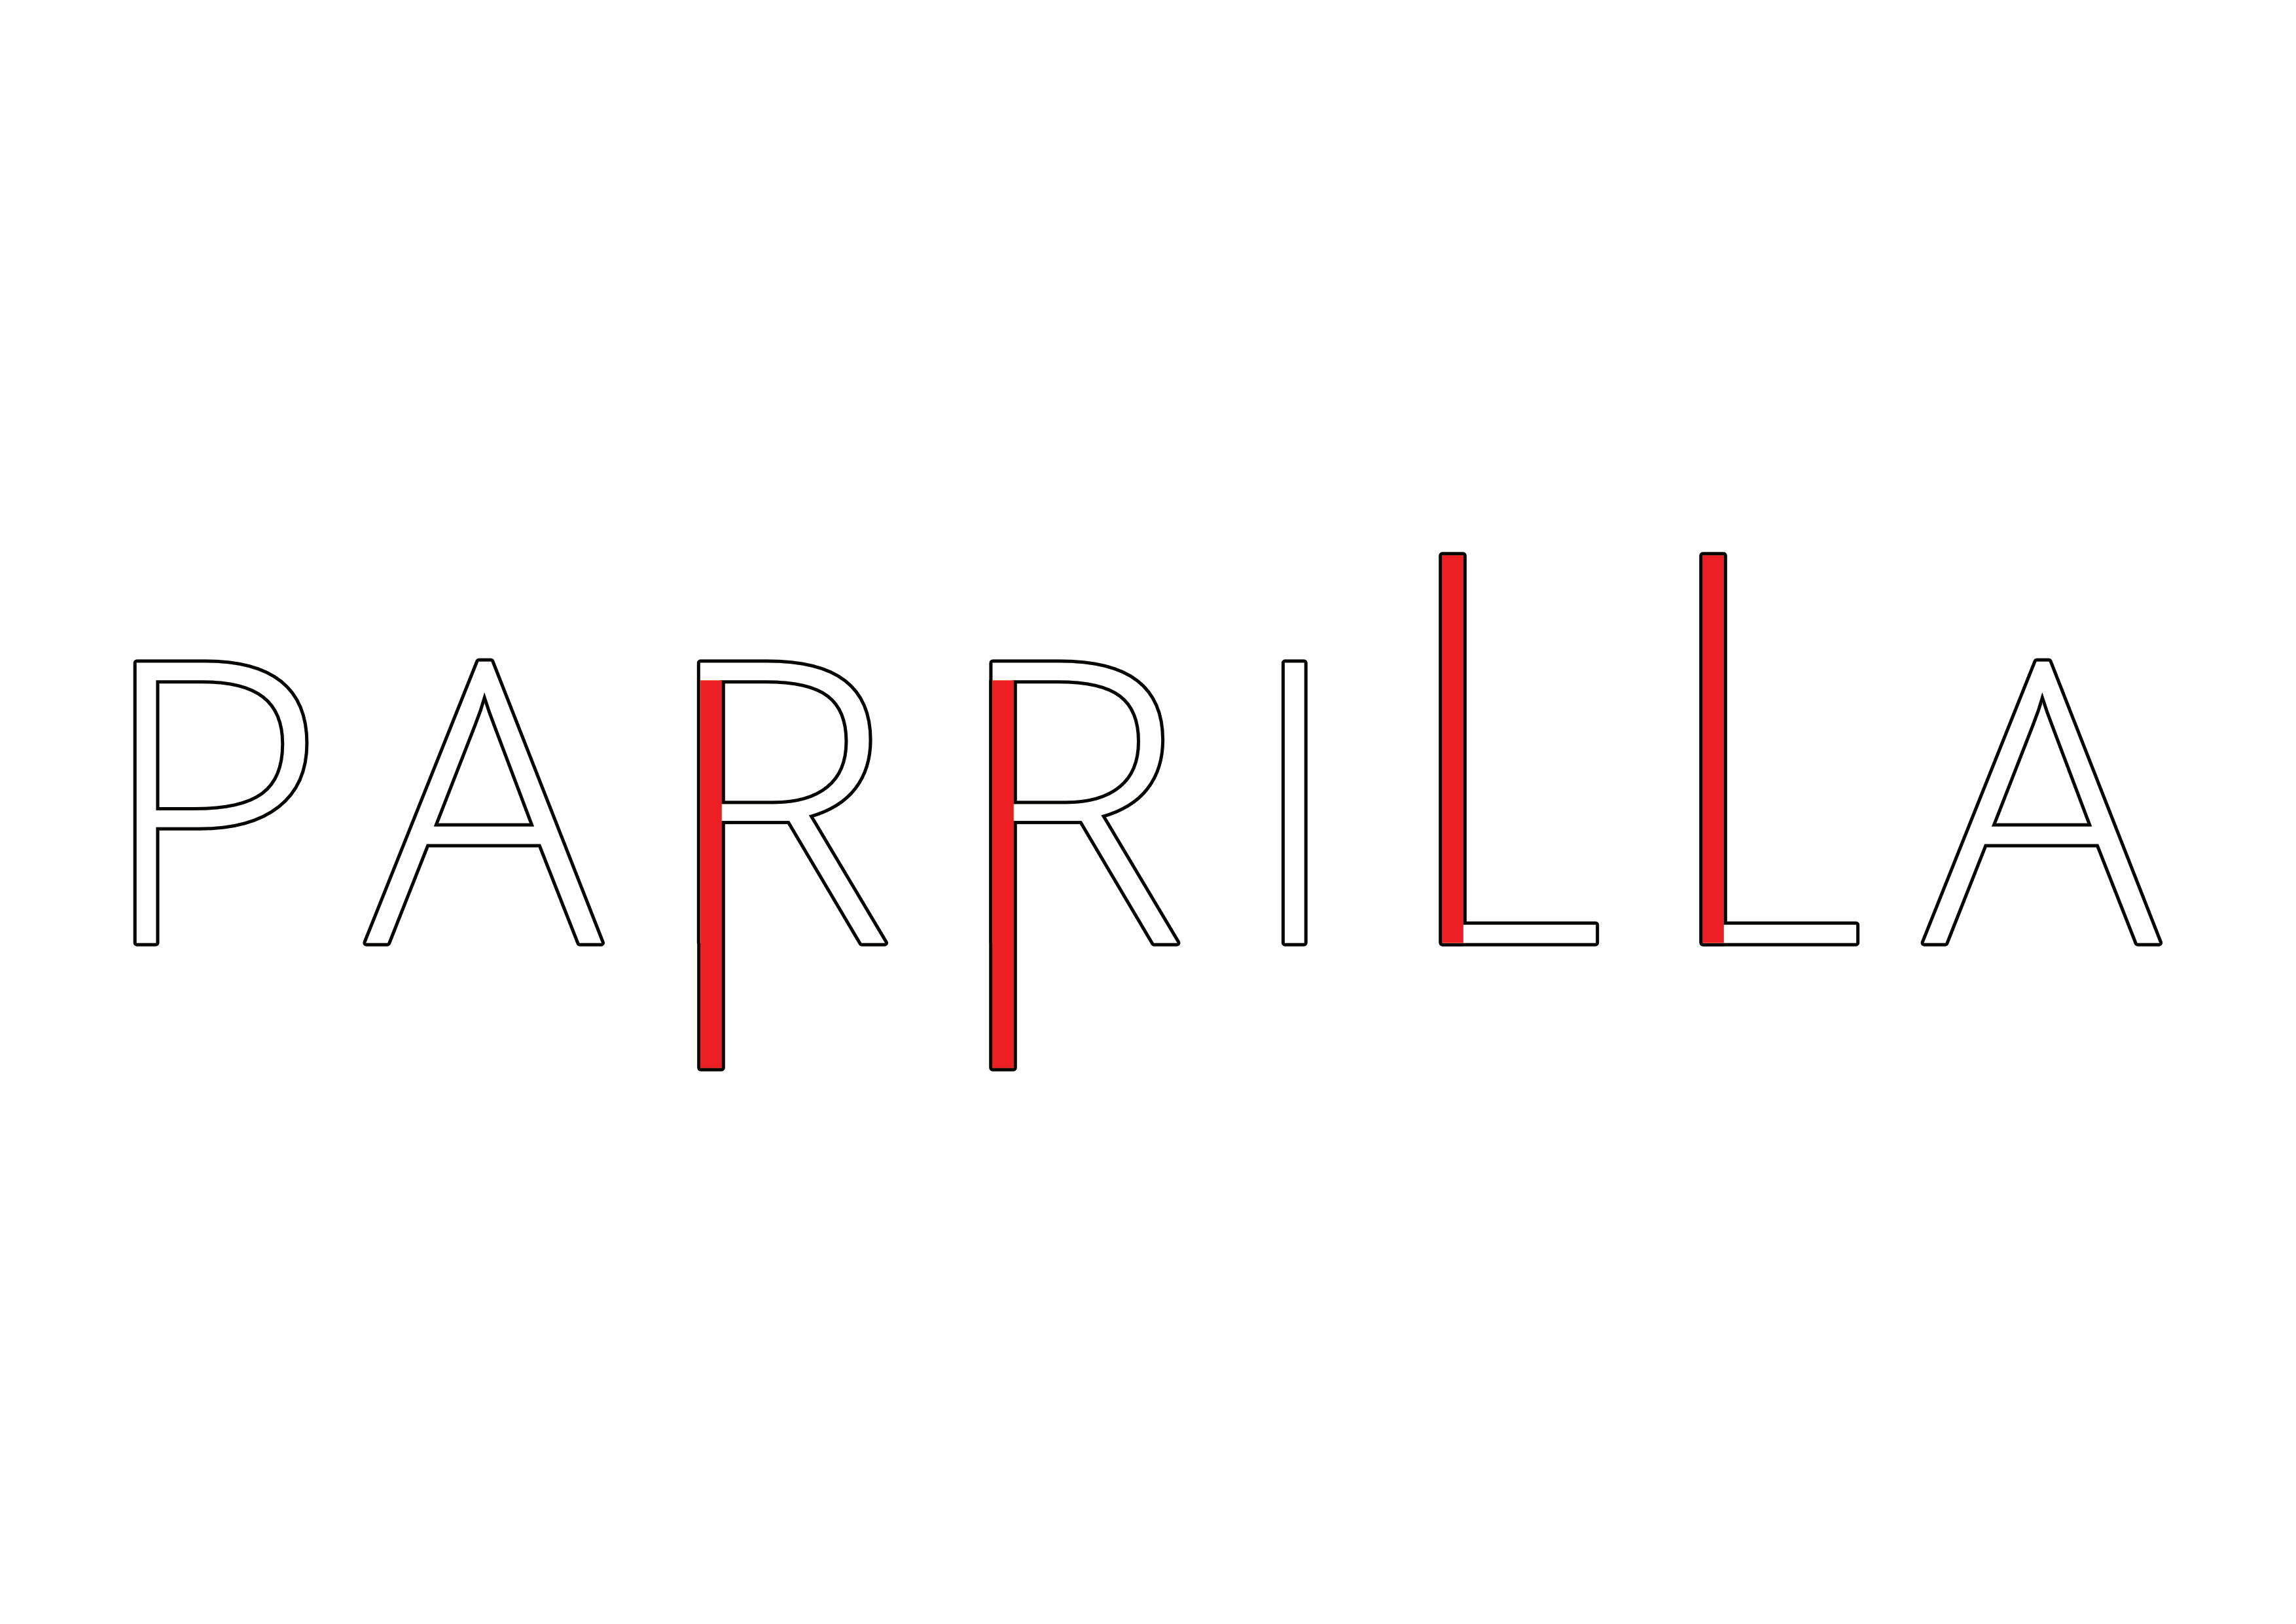 parrilla band logo since 2021 in white